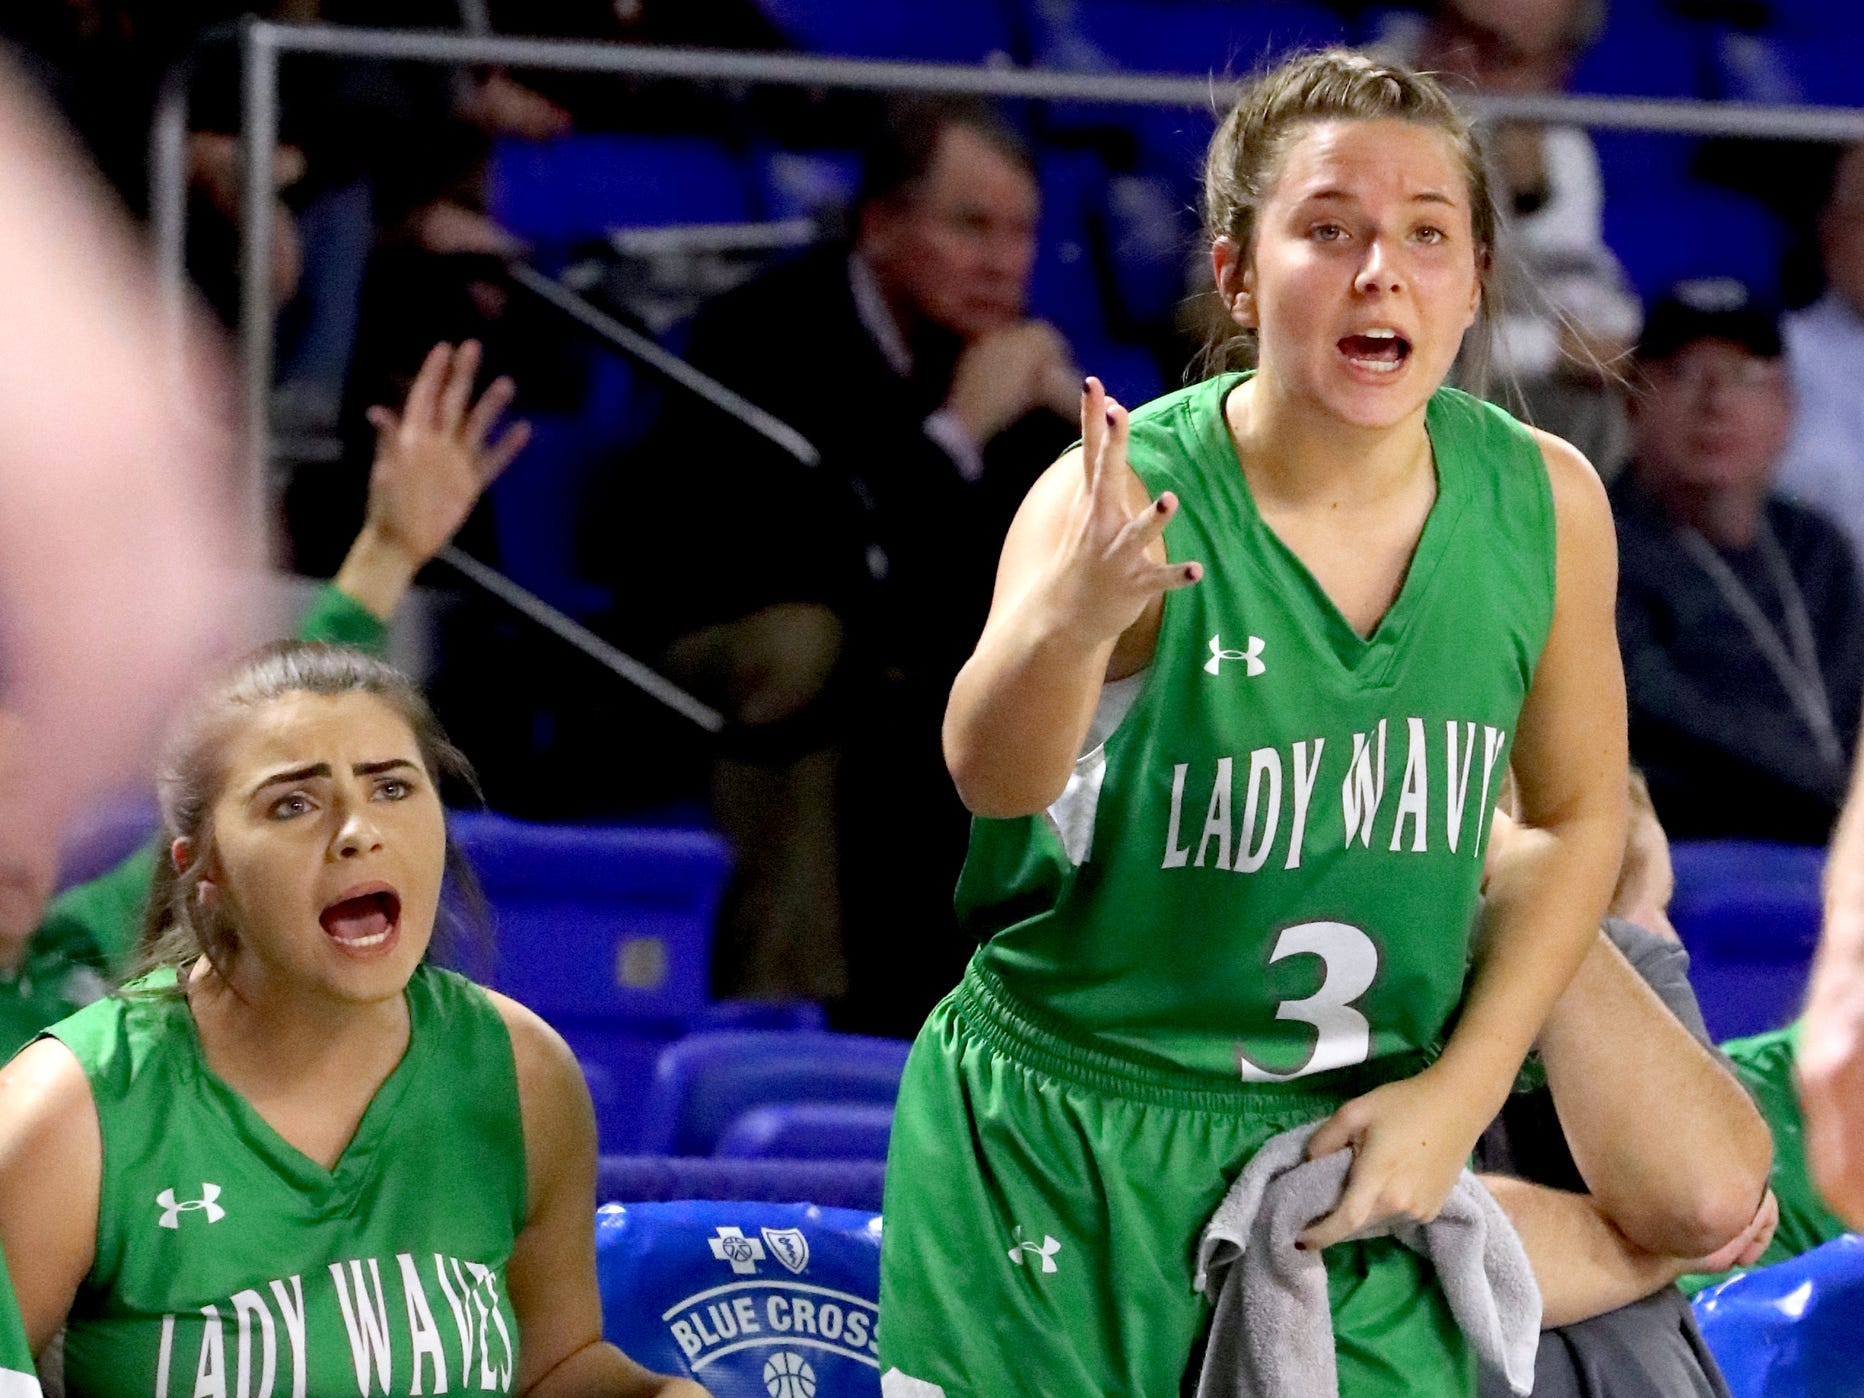 Midway's Megan Norman (11) and Midway's Rebecca Lemasters (3) react to a call during the quarterfinal round of the TSSAA Div. 1 Class A Girls State Tournament against Eagleville, on Thursday, March 7, 2019, at Murphy Center in Murfreesboro, Tenn.